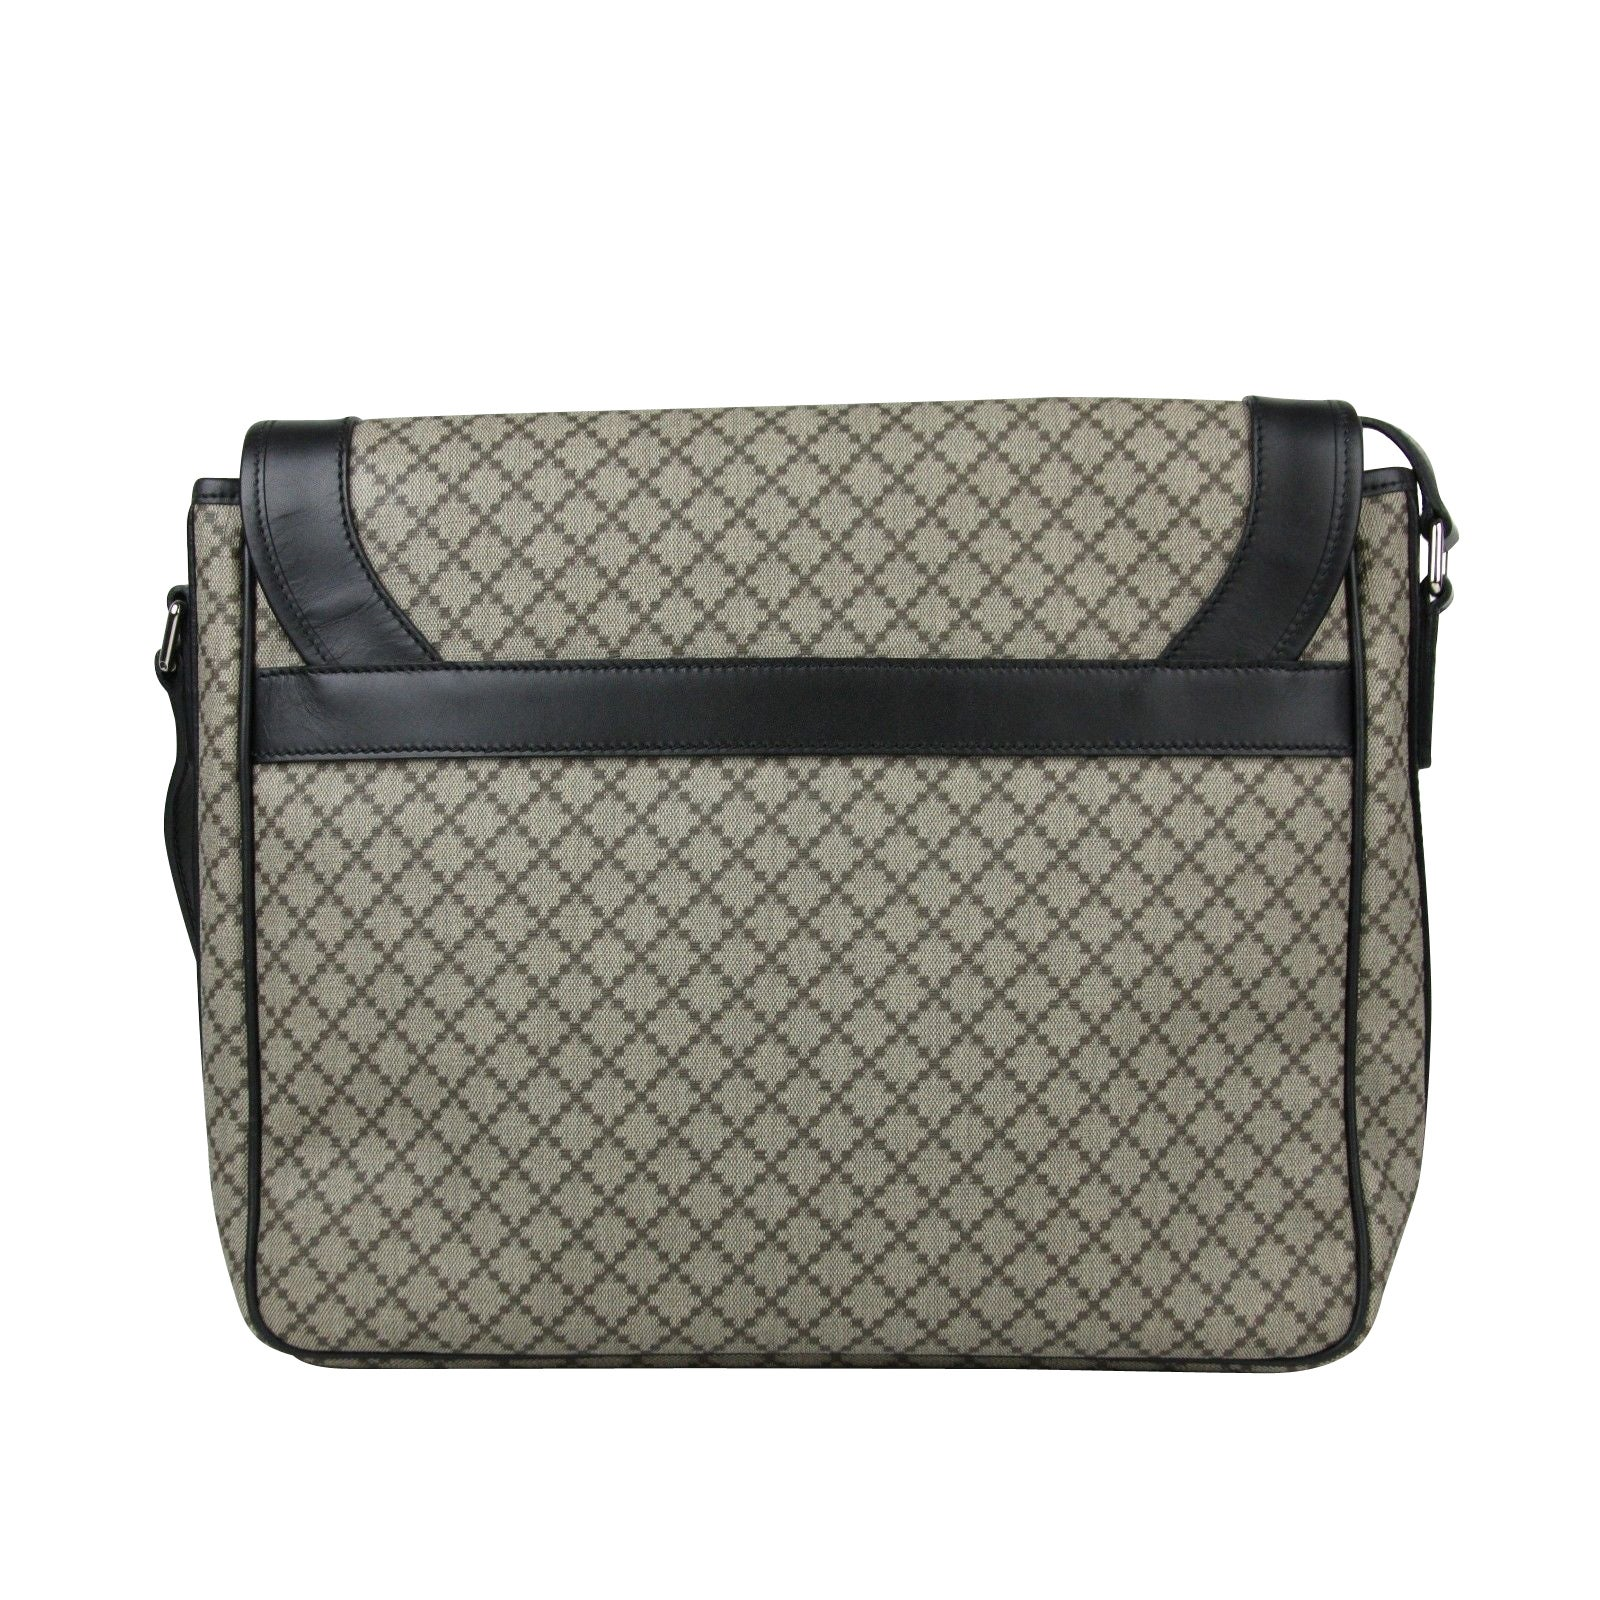 4d7db8562db079 Gucci Men's Supreme Beige/Ebony Diamante Canvas Messenger Bag 295251 9769 -  One size